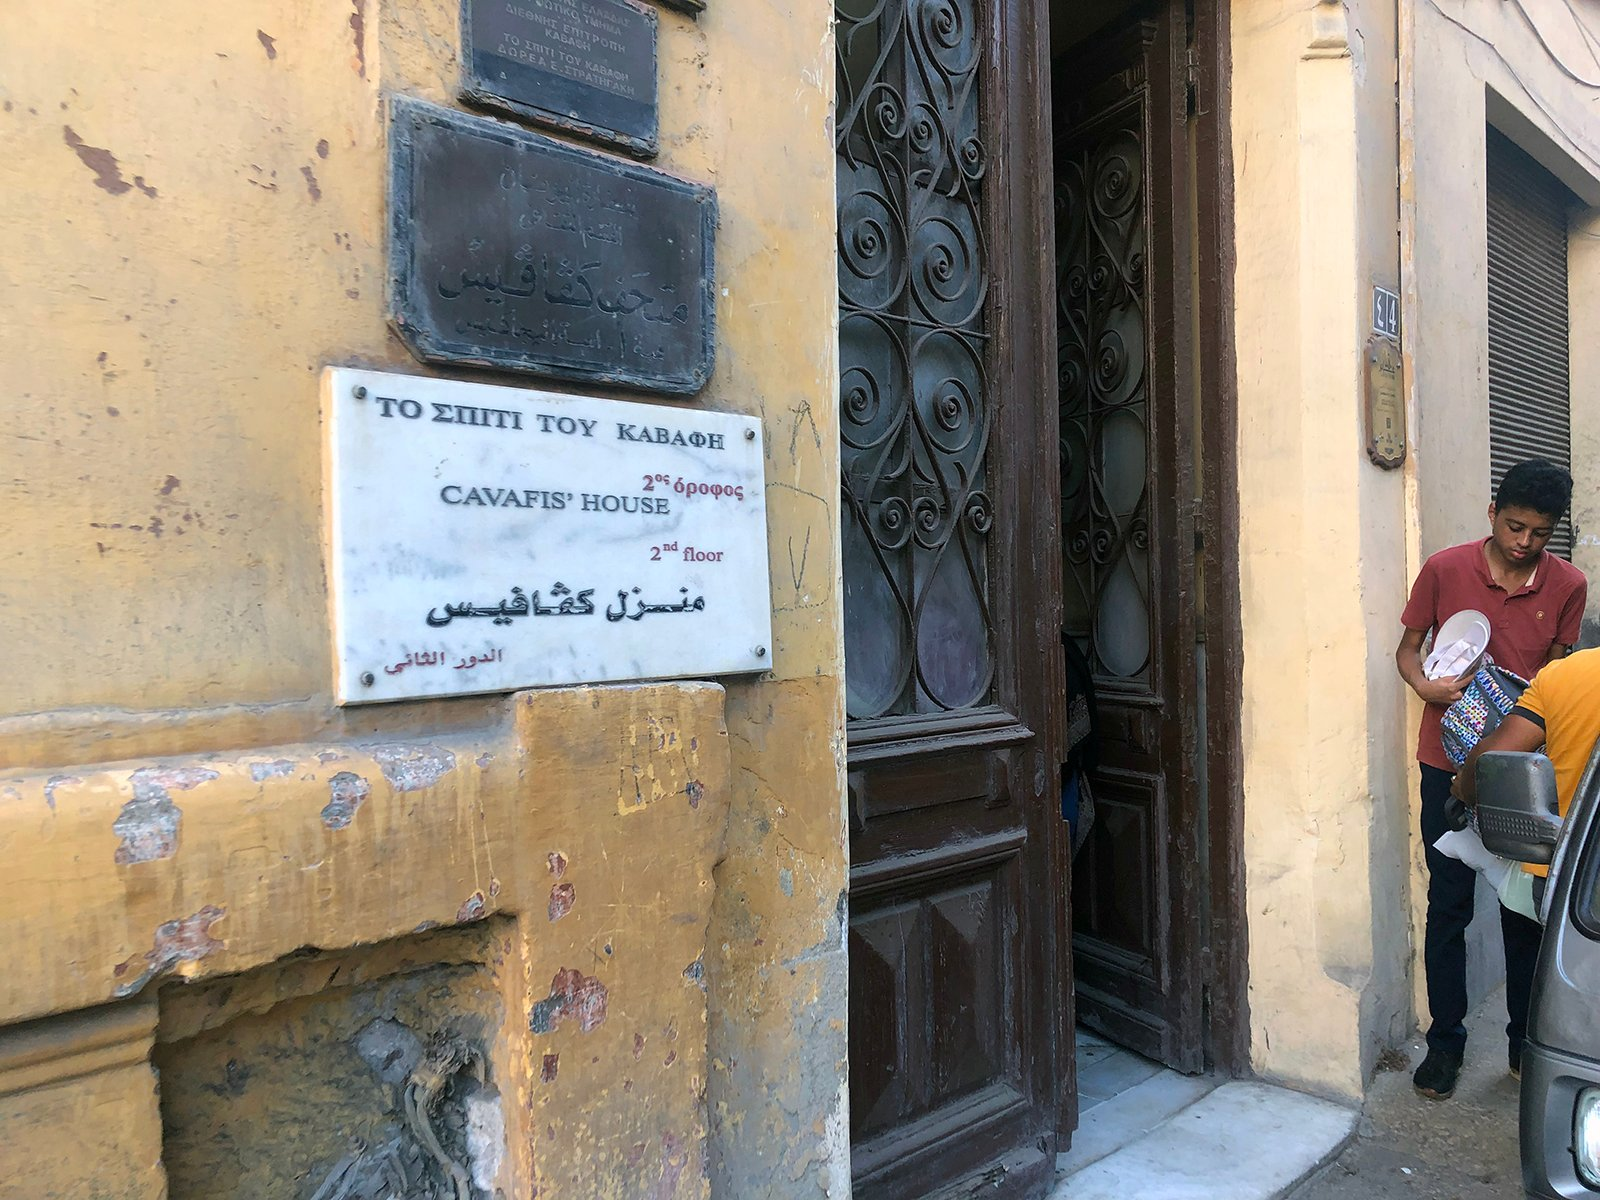 A marble sign in Arabic, English, and Greek notes the Constantine Cavafy apartment museum is on the second floor in Alexandria, Egypt. RNS photo by Joseph Hammond